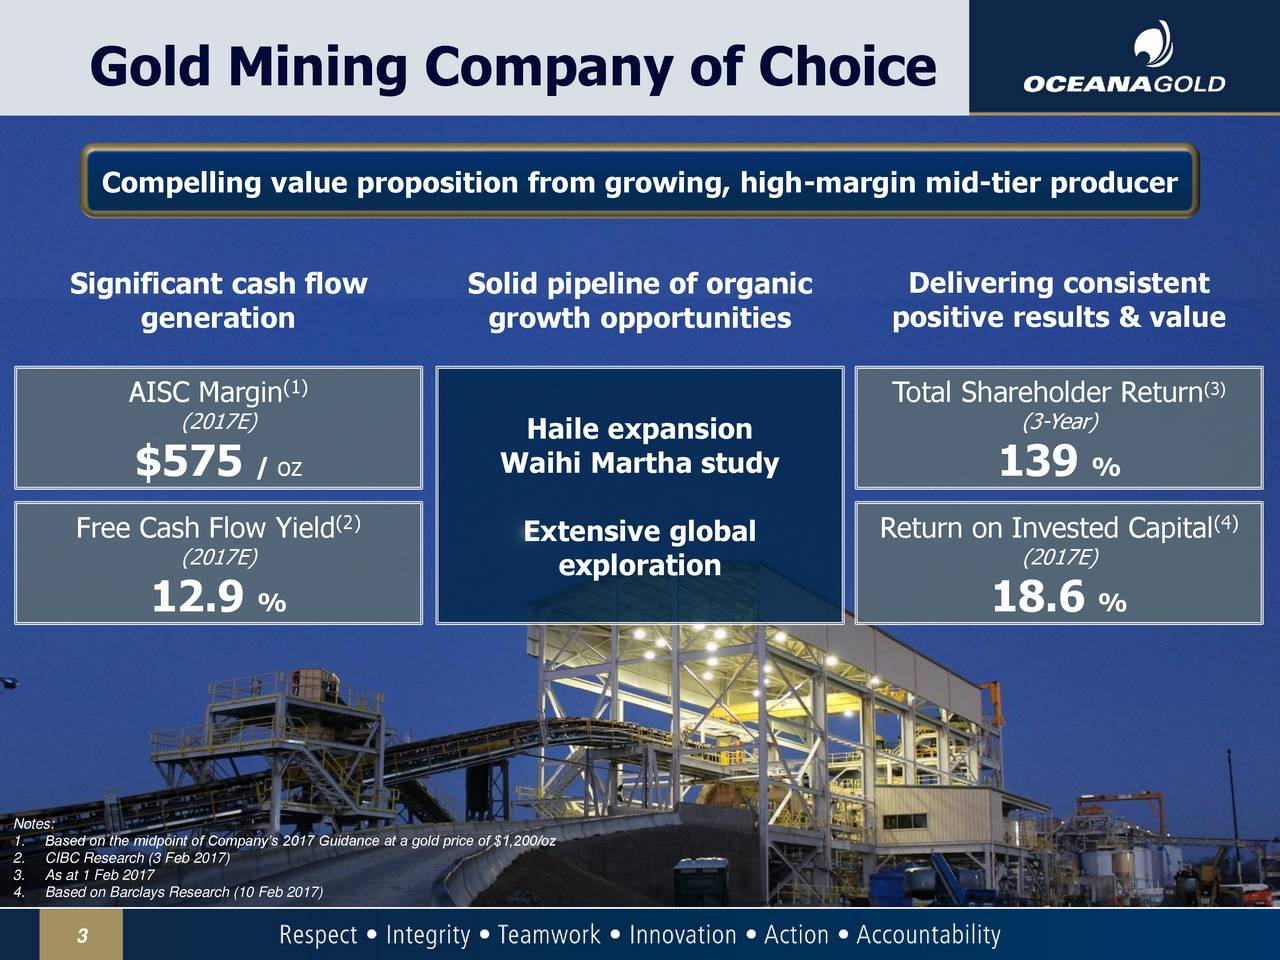 Compelling value proposition from growing, high-margin mid-tier producer Significant cash flow Solid pipeline of organic Delivering consistent generation growth opportunities positive results & value AISC Margin(1) Total Shareholder Return3) (2017E) (3-Year) Haile expansion $575 / oz Waihi Martha study 139 % (2) (4) Free Cash Flow Yield Extensive global Return on Invested Capital (2017E) exploration (2017E) 12.9 % 18.6 % 1.Based on the midpoint of Companys 2017 Guidance at a gold price of $1,200/oz 2.CIBC Research (3 Feb 2017) 4.Based on Barclays Research (10 Feb 2017) 3